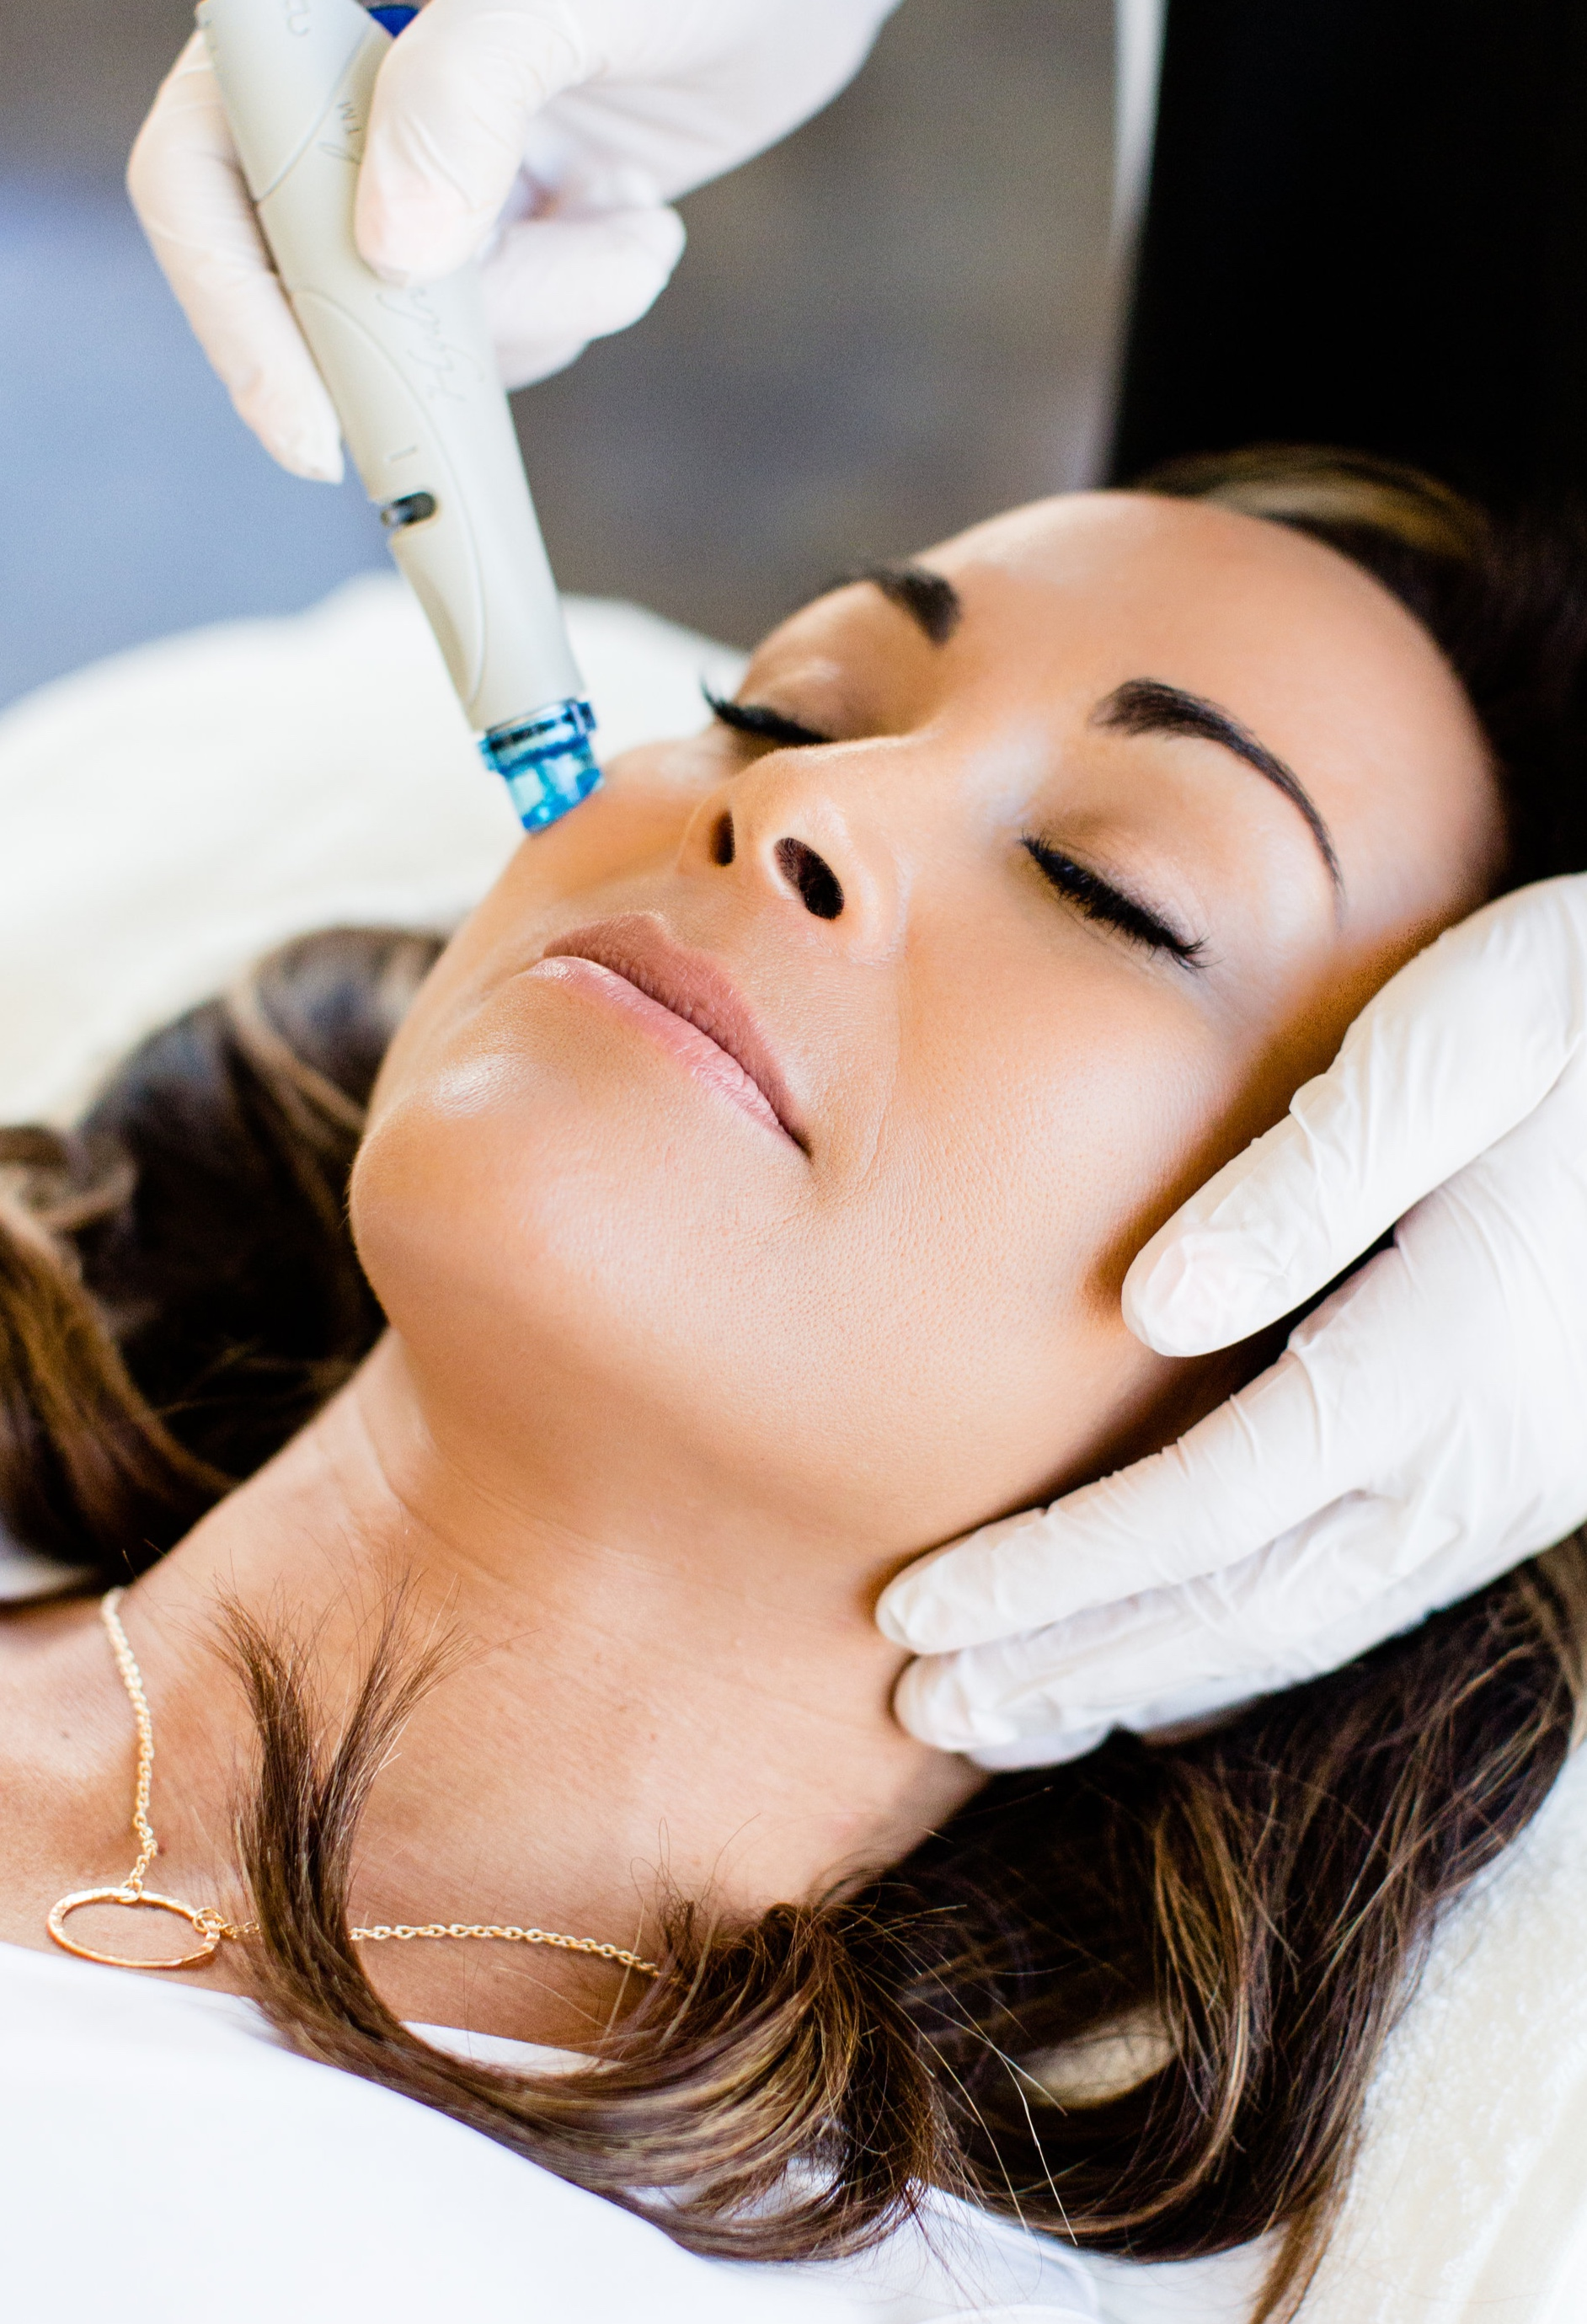 SKIN HEALTH DOESN'T NEED TO BE COMPLICATED   The HydraFacial treatment can be tailored to safely & effectively address your unique needs.